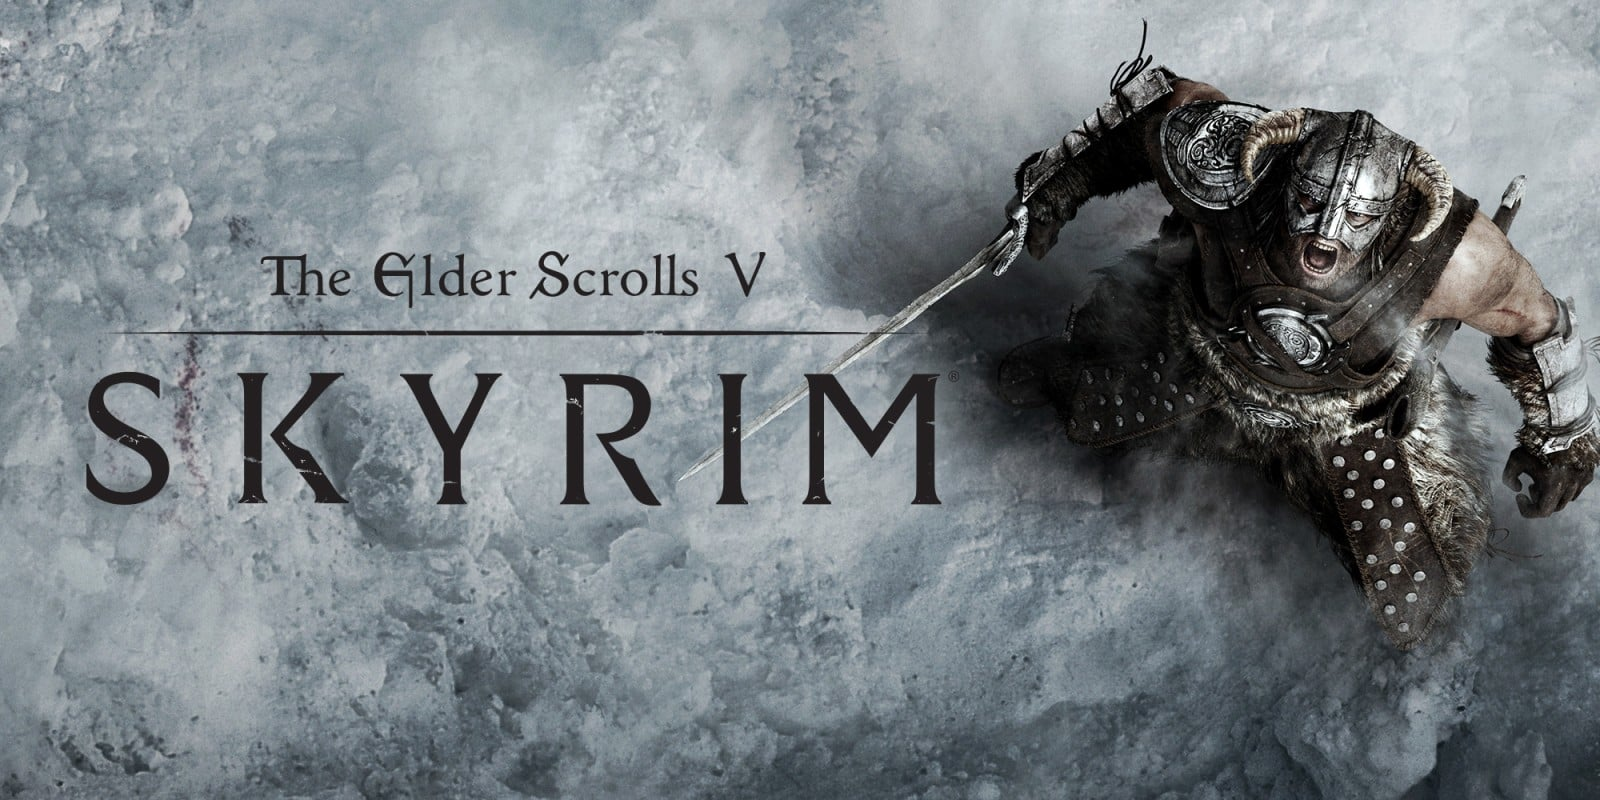 The Elders Scrolls V Skyrim Update Version 1.16 Patch Notes PS4 Xbox One PC Full Details Here